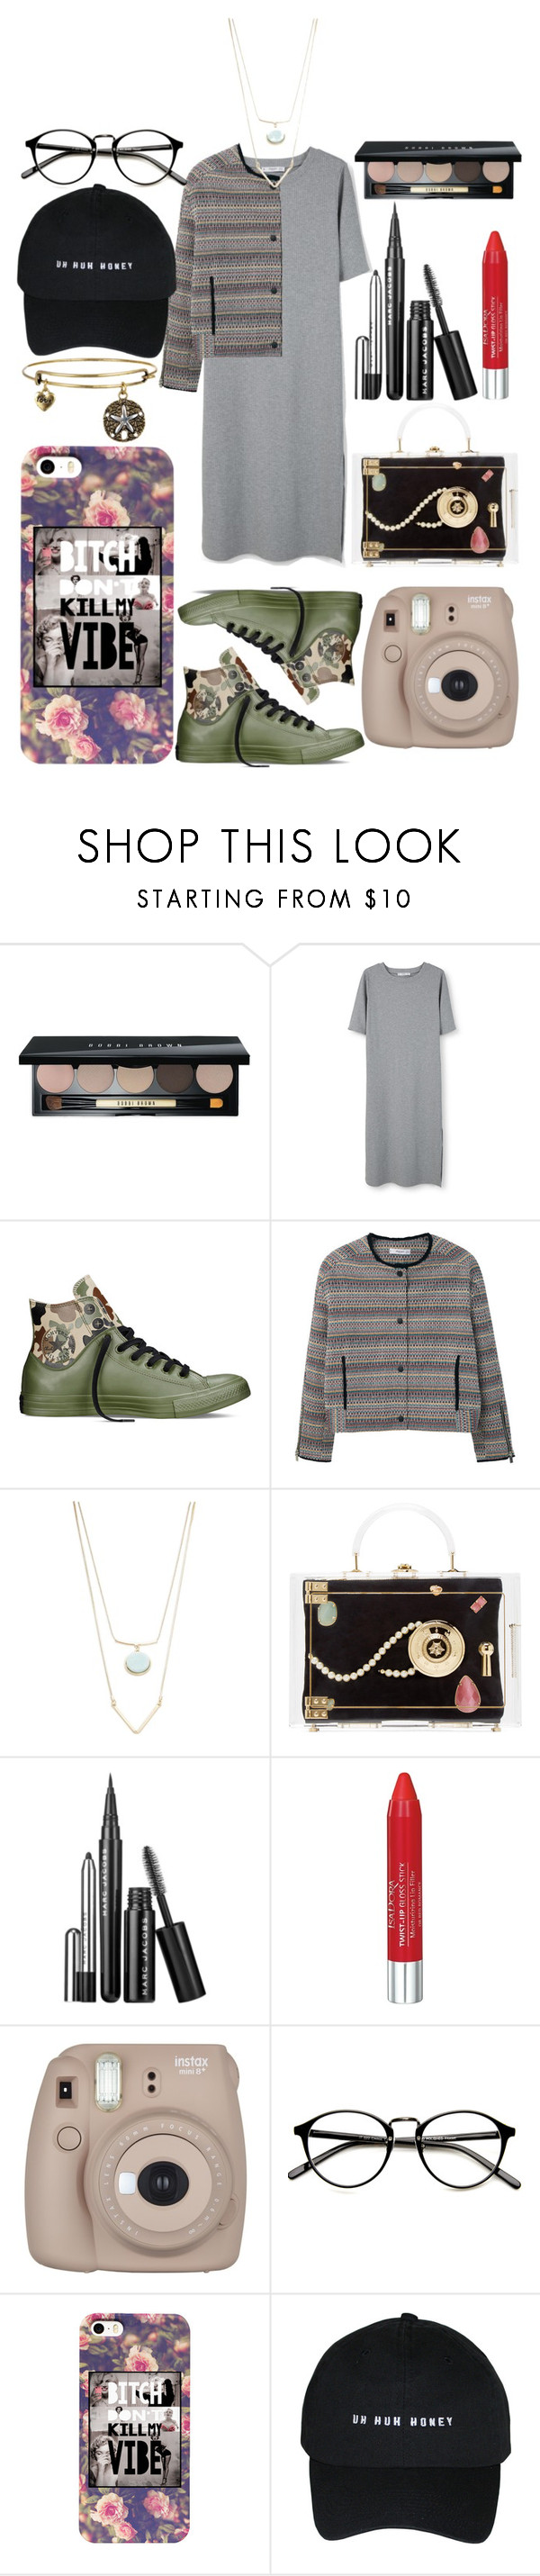 """""""Untitled #84"""" by cemlais22 on Polyvore featuring Bobbi Brown Cosmetics, MANGO, Converse, Robert Rose, Charlotte Olympia, Marc Jacobs and Isadora"""